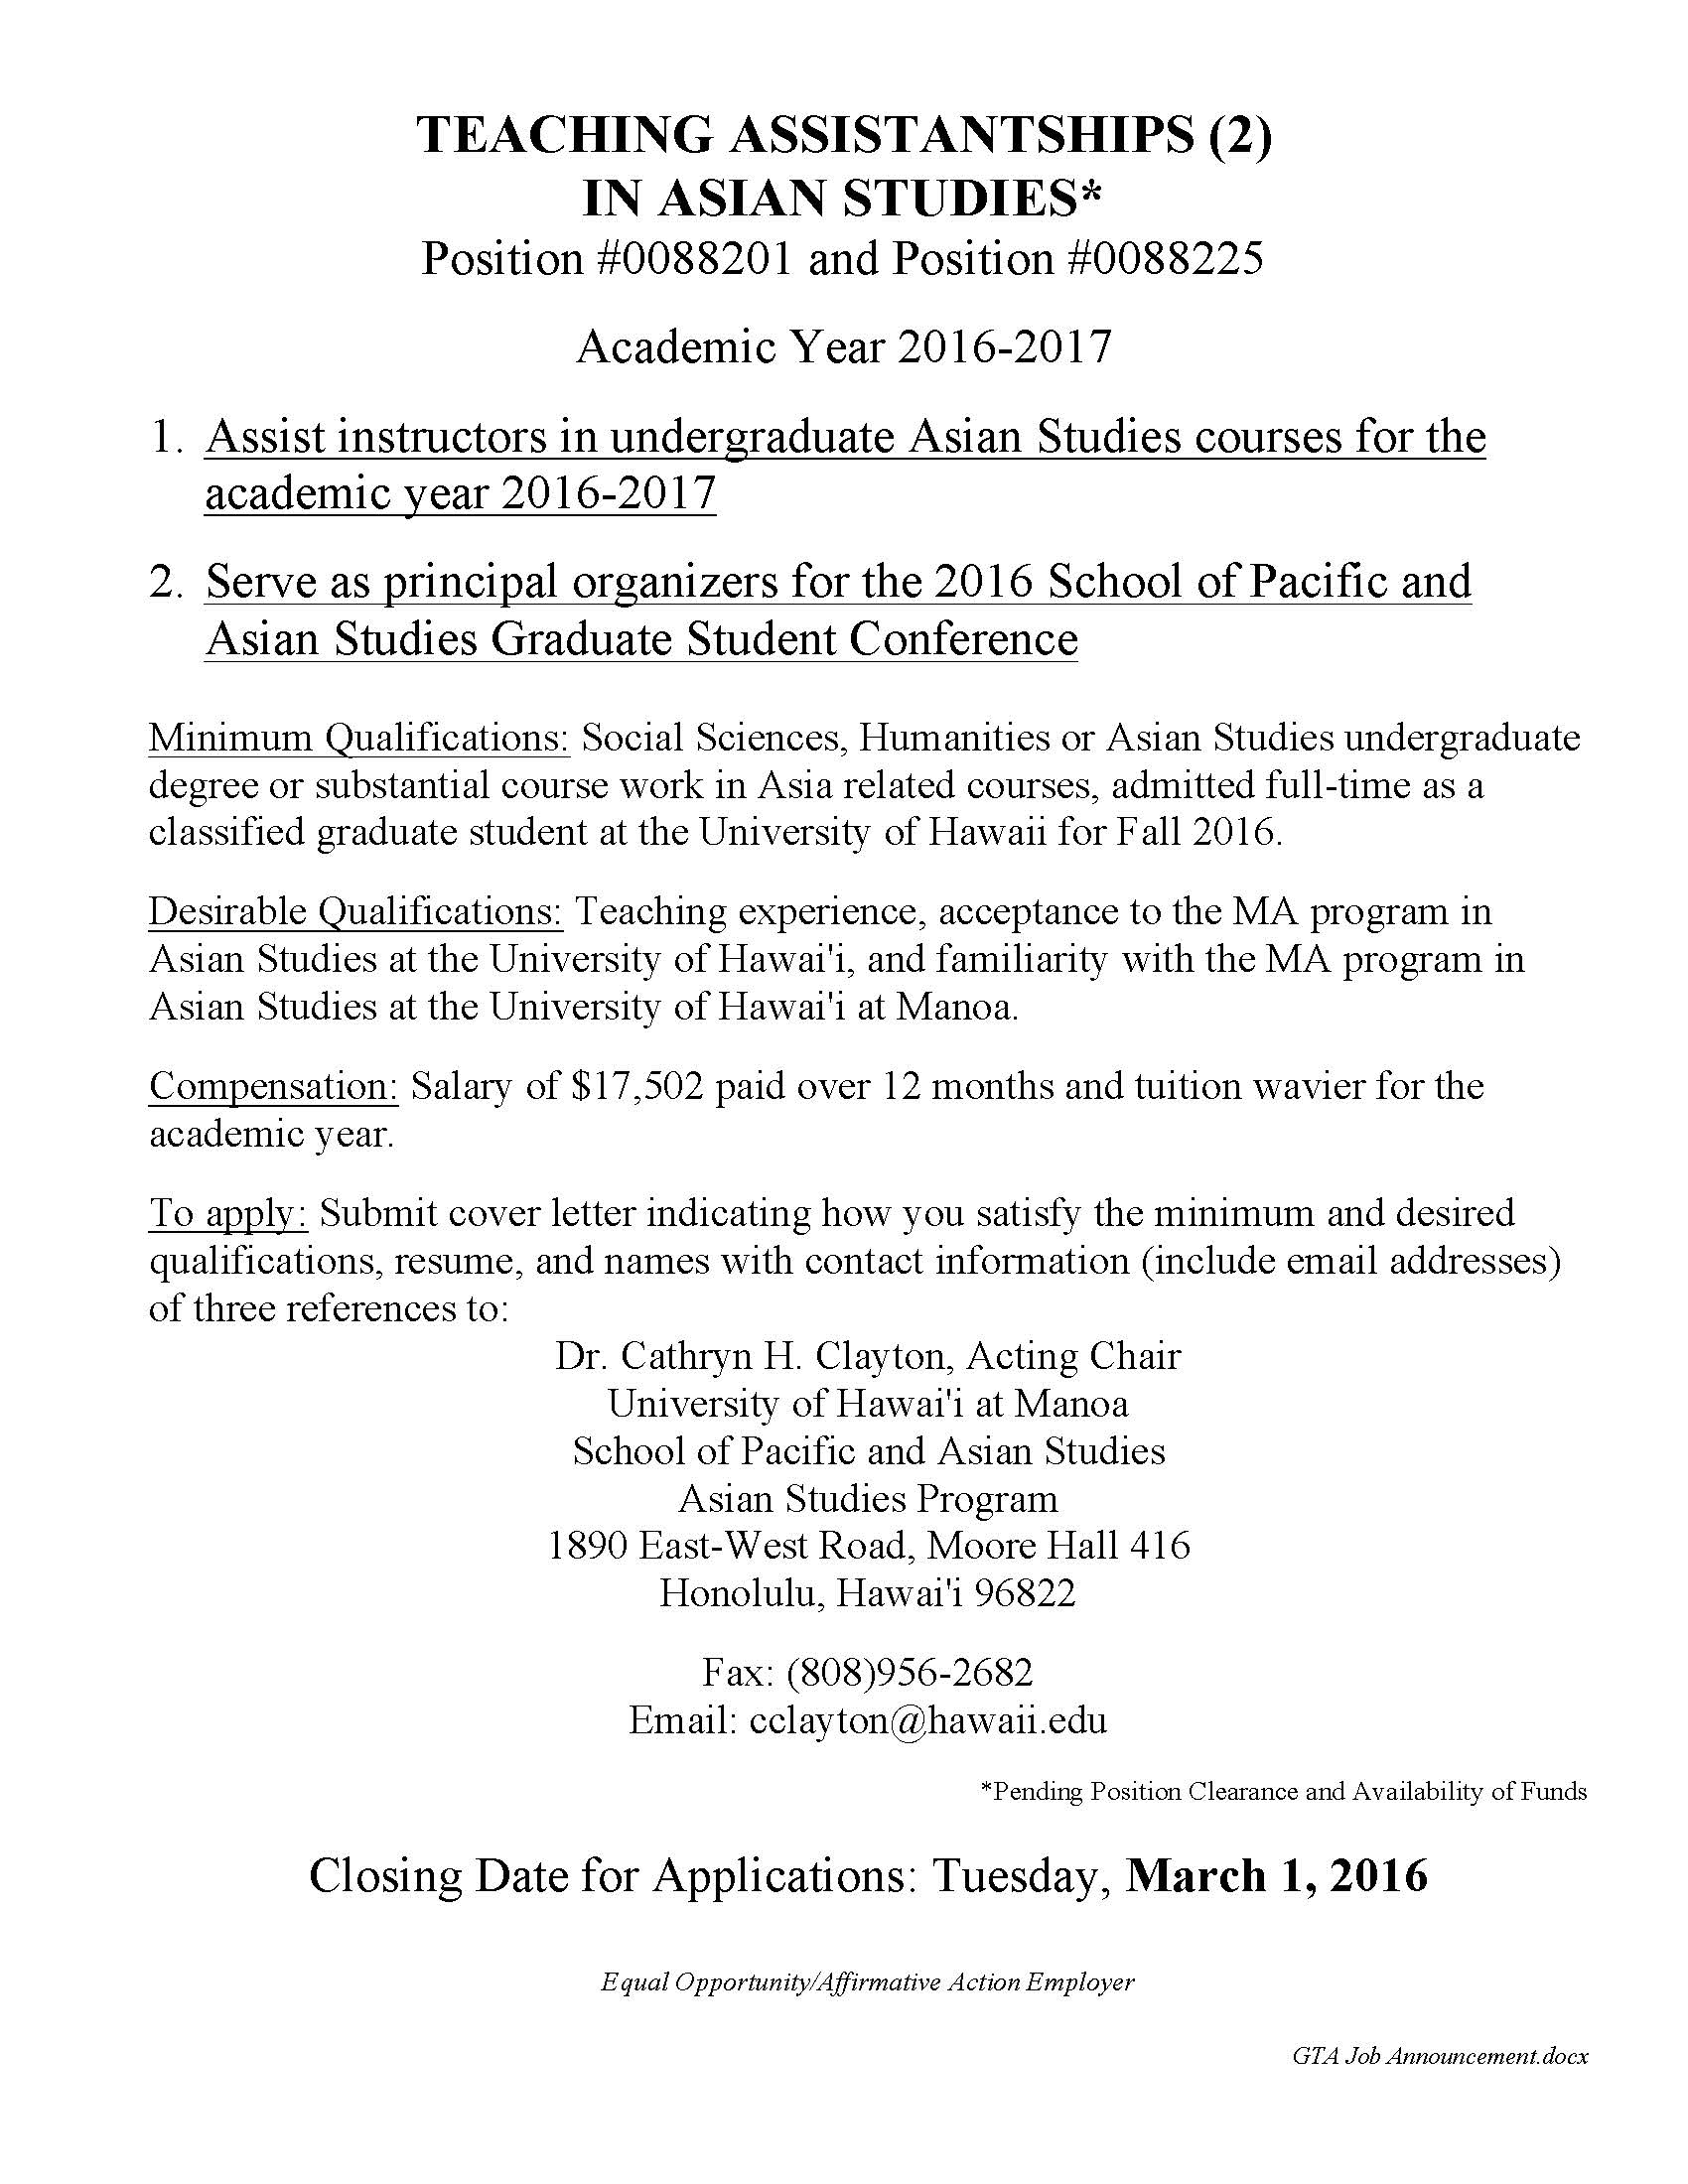 Two Teaching Assistantships in Asian Studies for 2016-2017 ...